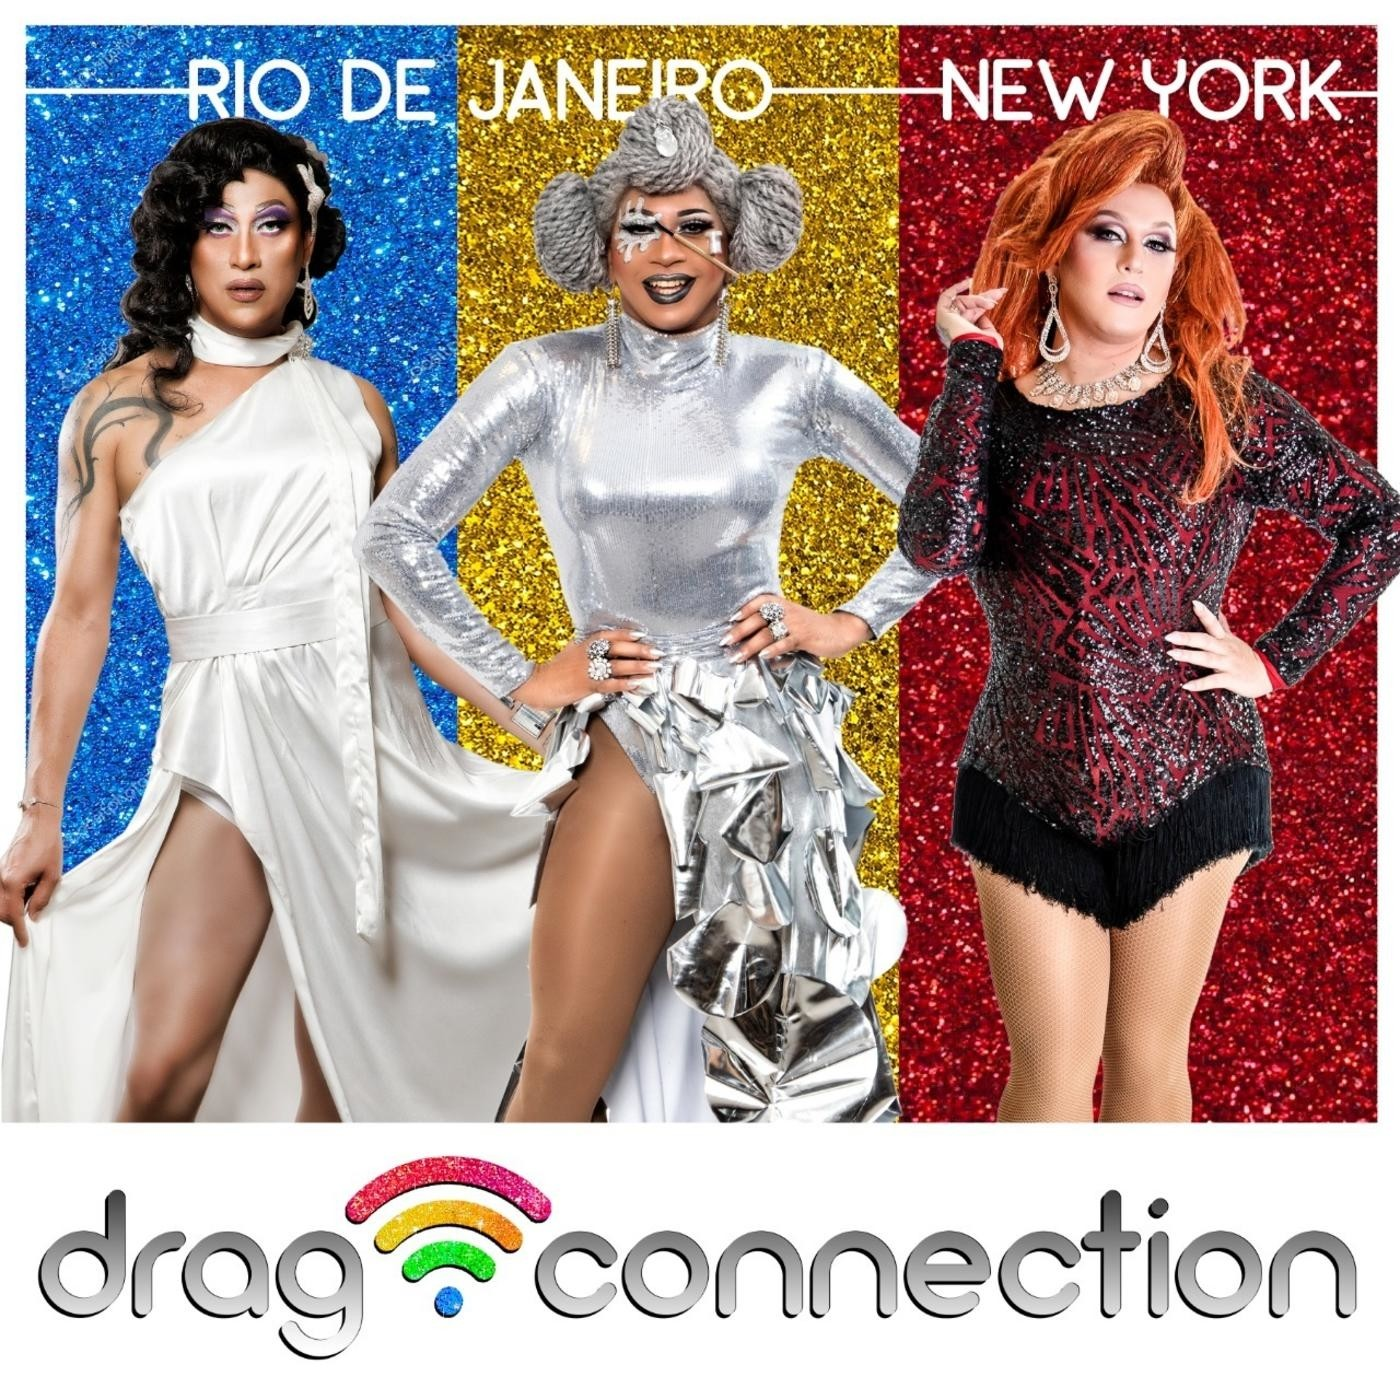 Drag Connection